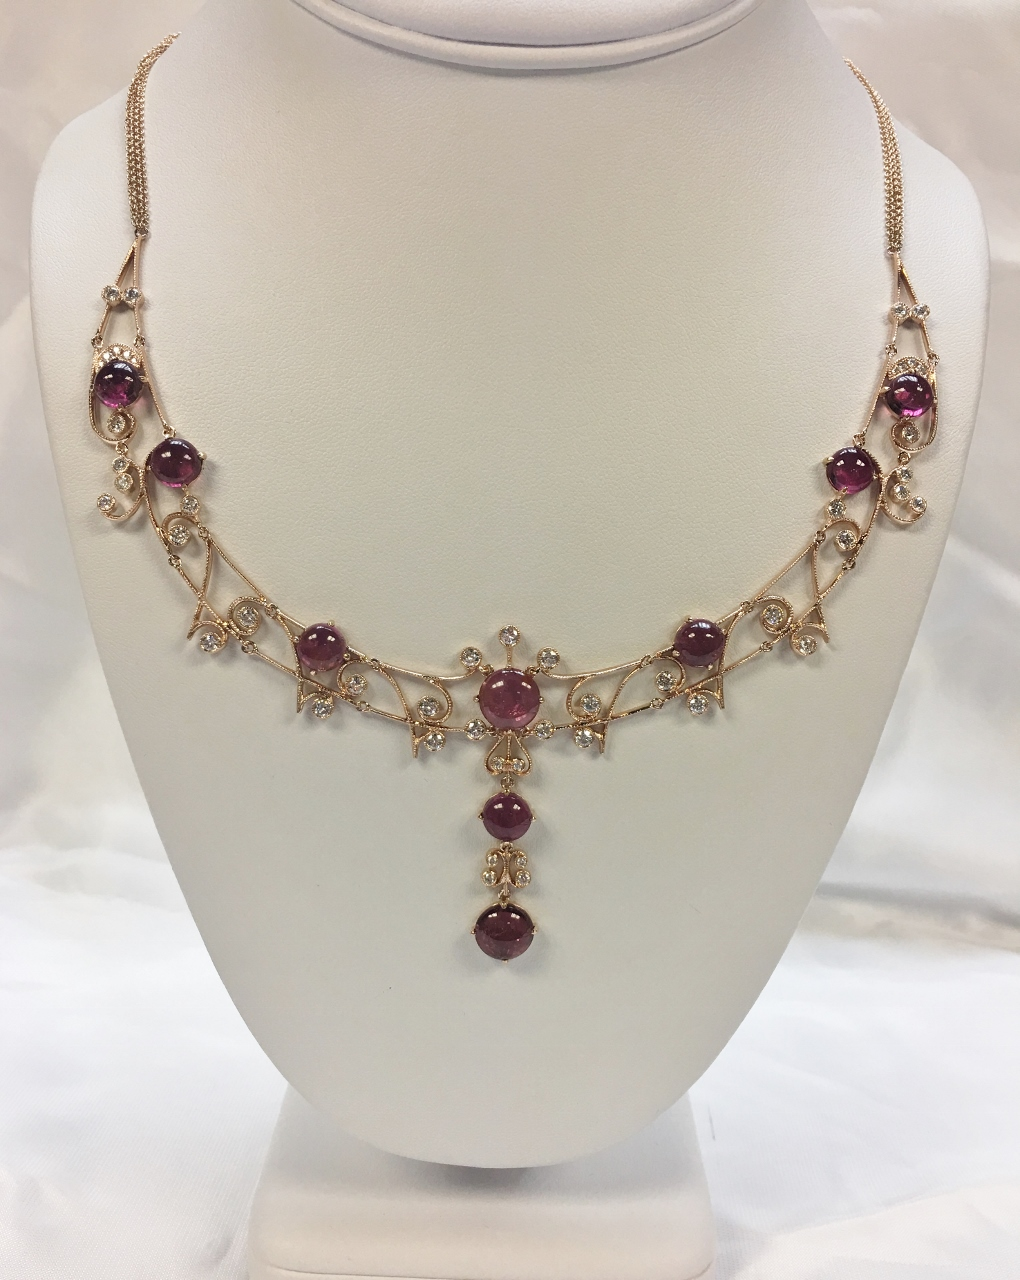 15 Carats Pink Tourmaline Rose Gold Necklace